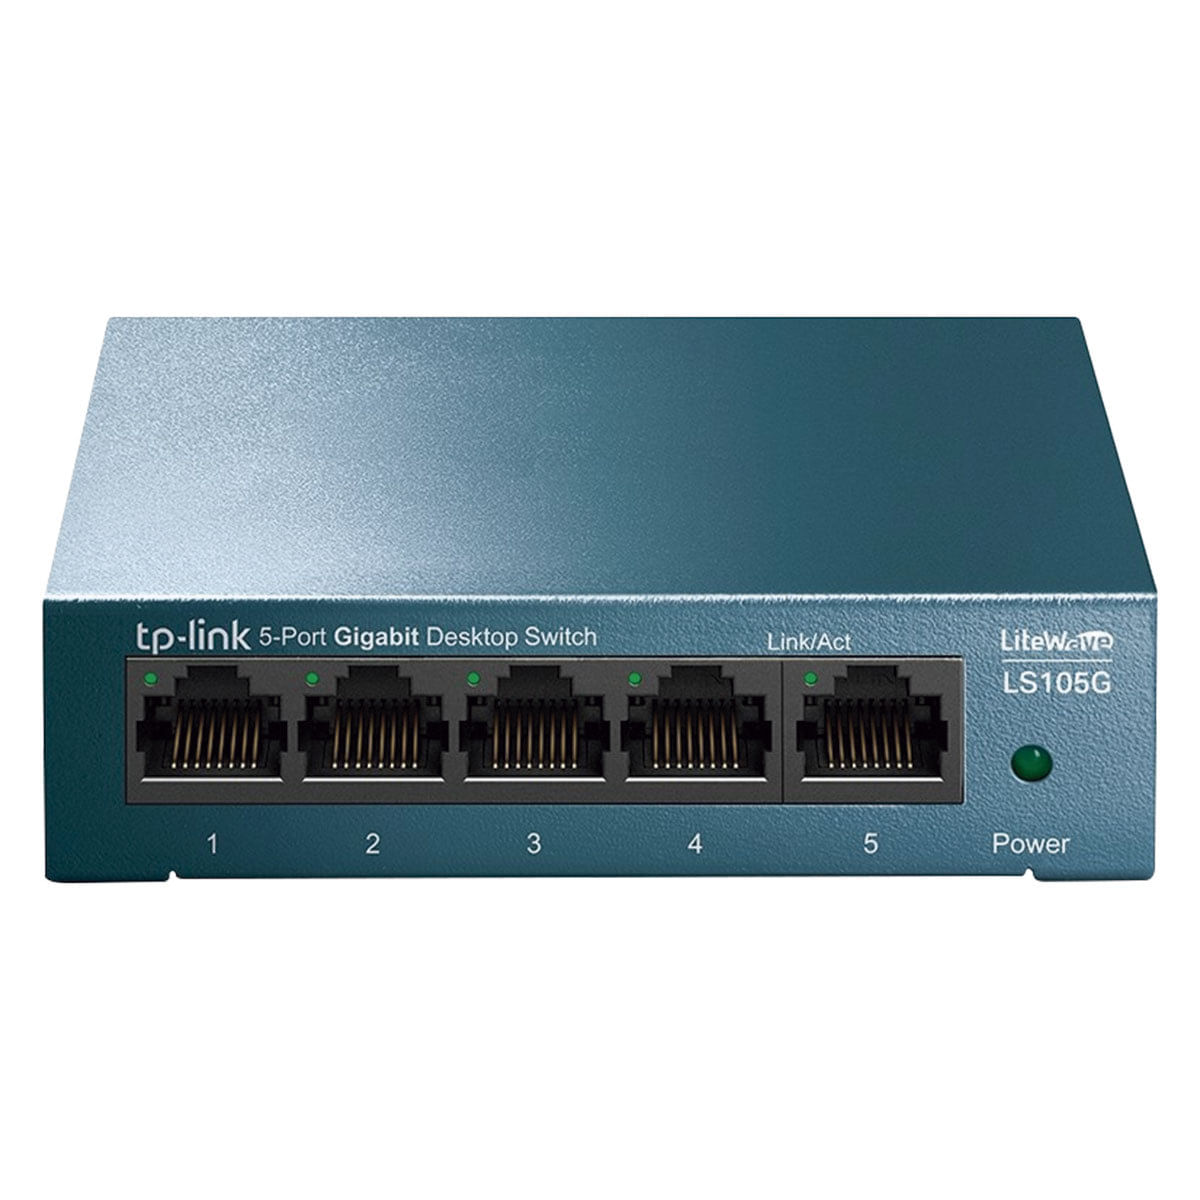 Switch de Rede 05 Portas 10/100/1000 Gigabit LiteWave TL-LS105G Tp-Link